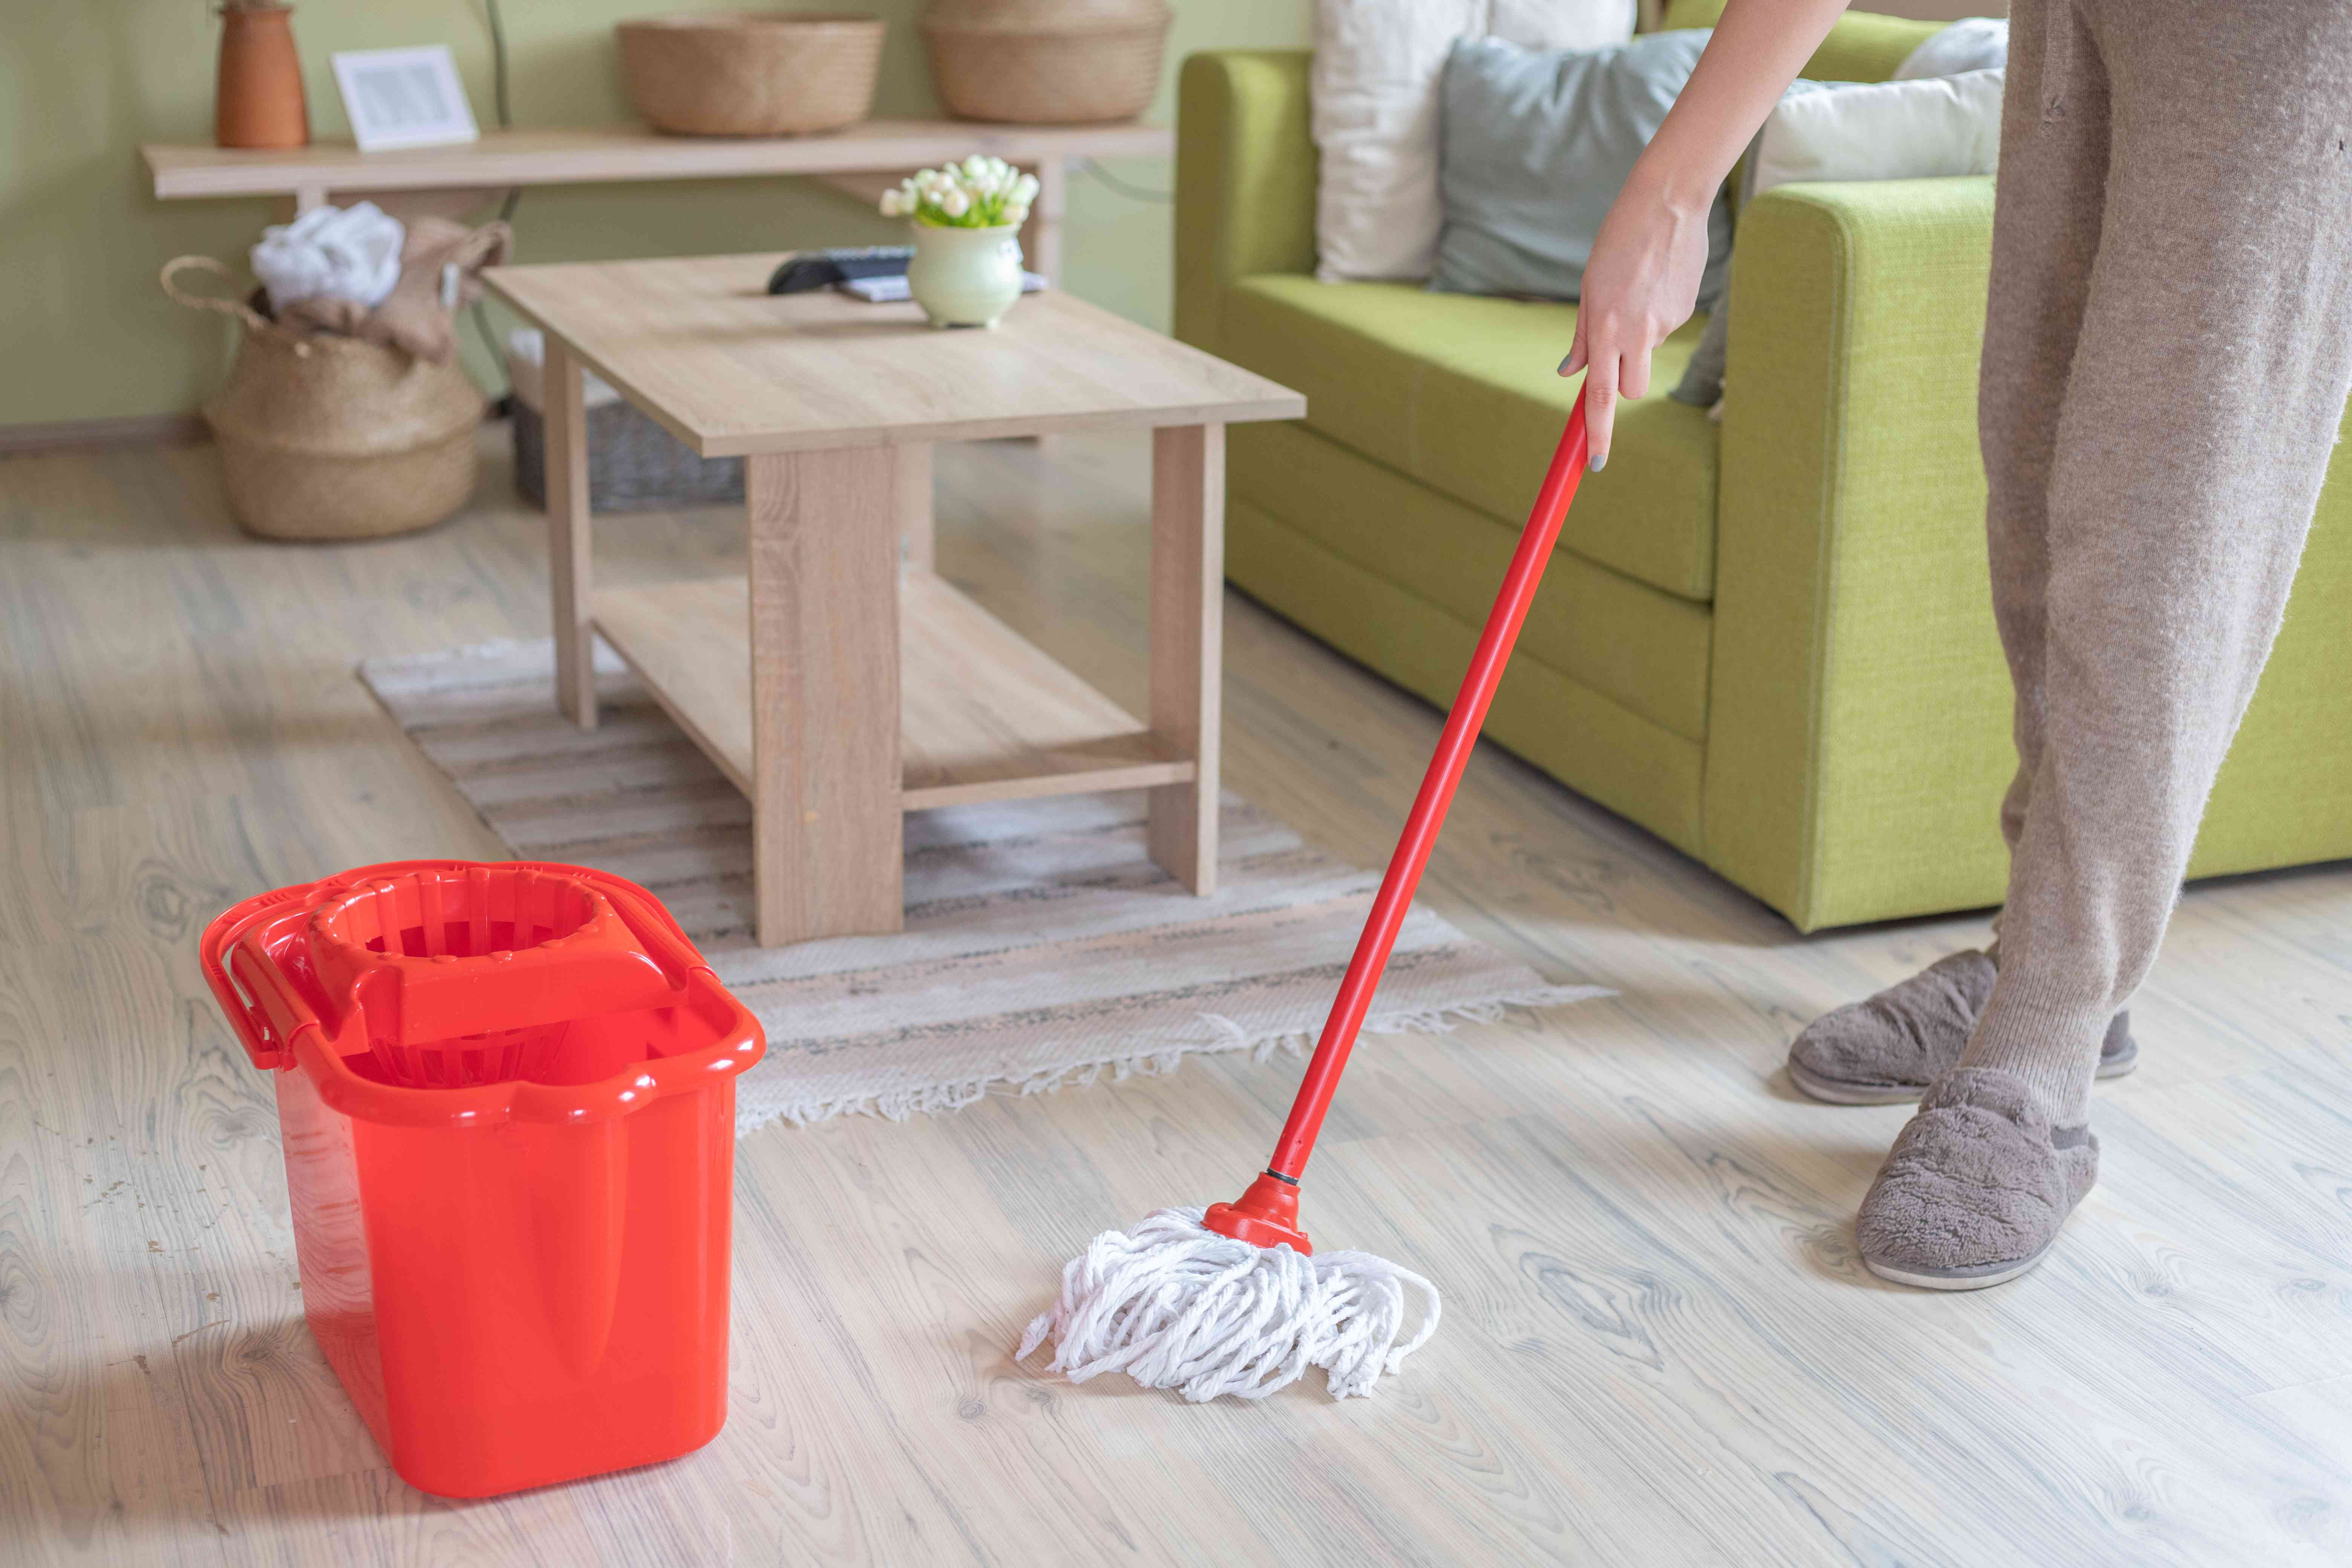 waist-down shot of person cleaning house with red bucket and mop